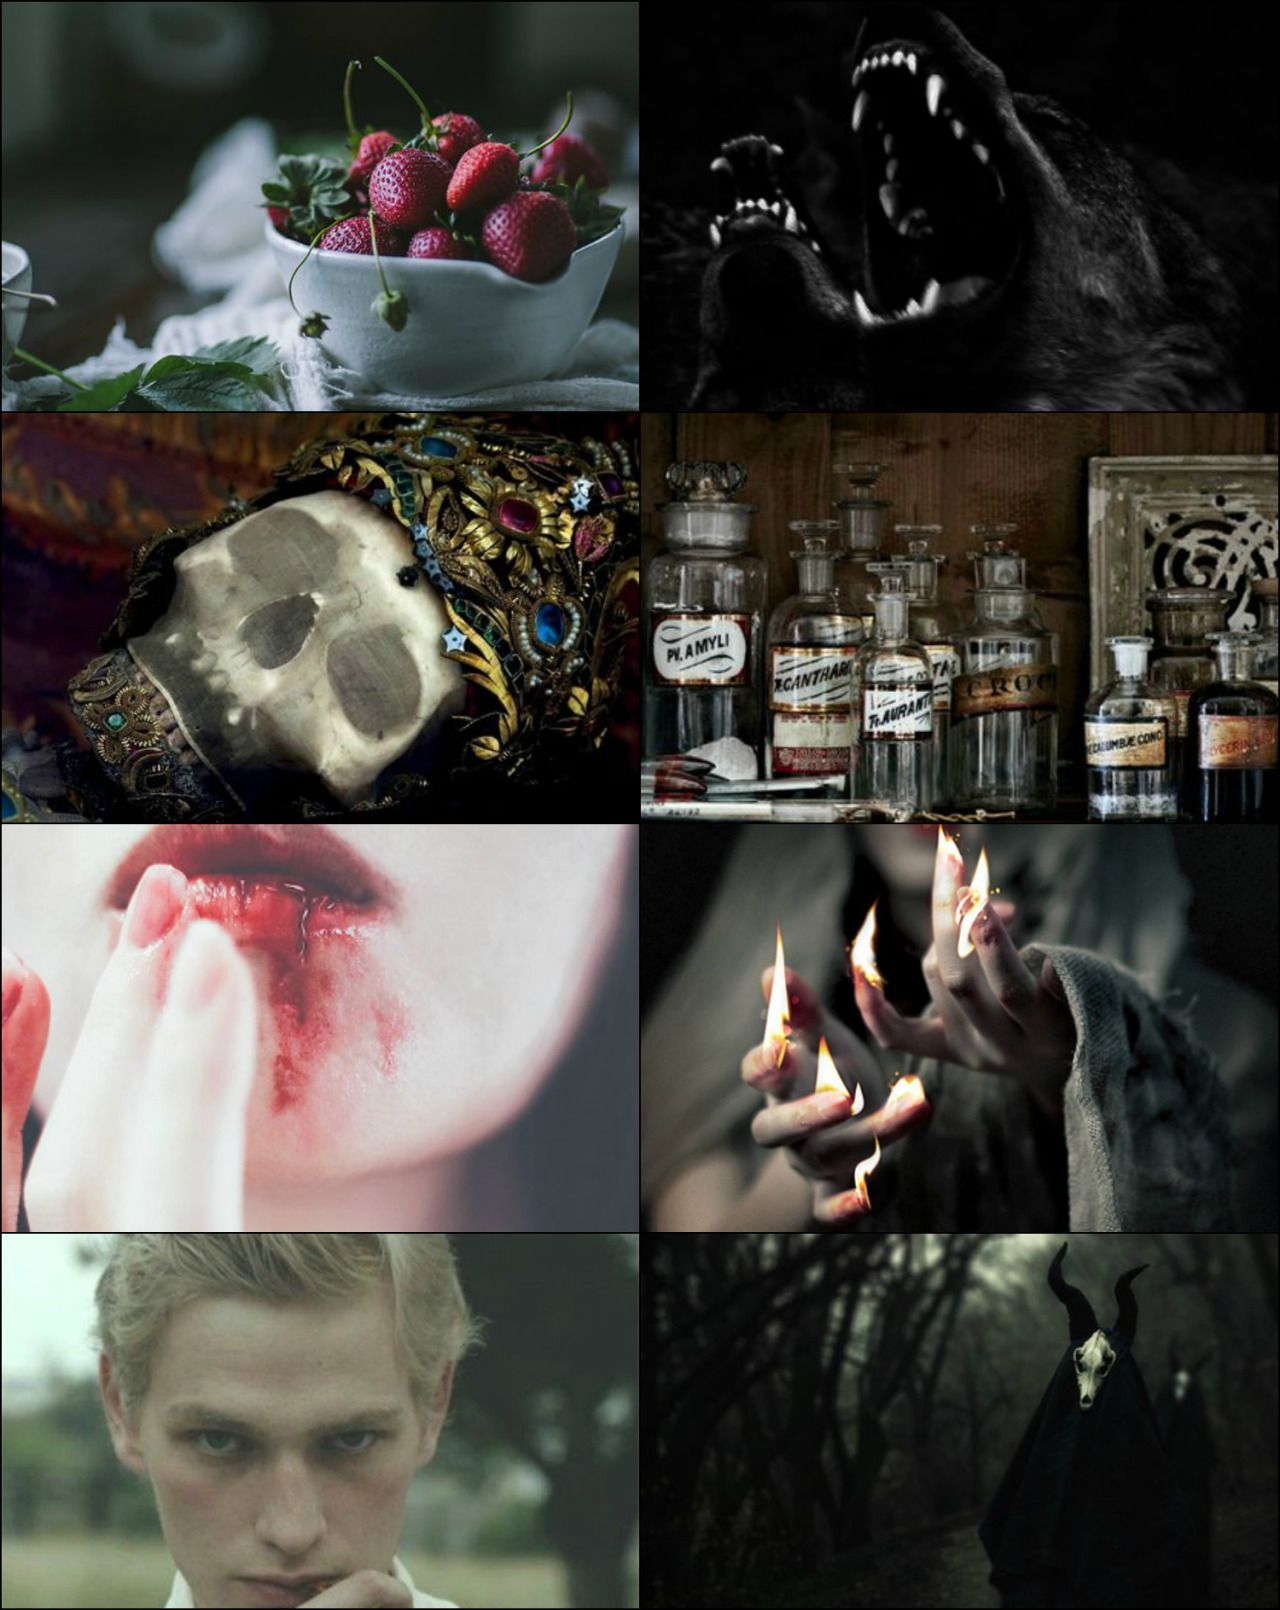 Literature Aesthetic: - The Ouroboros Cycle: Books 1 - 4 (Minimized.) The Ouroboros Cycle Series by G.D. Falksen